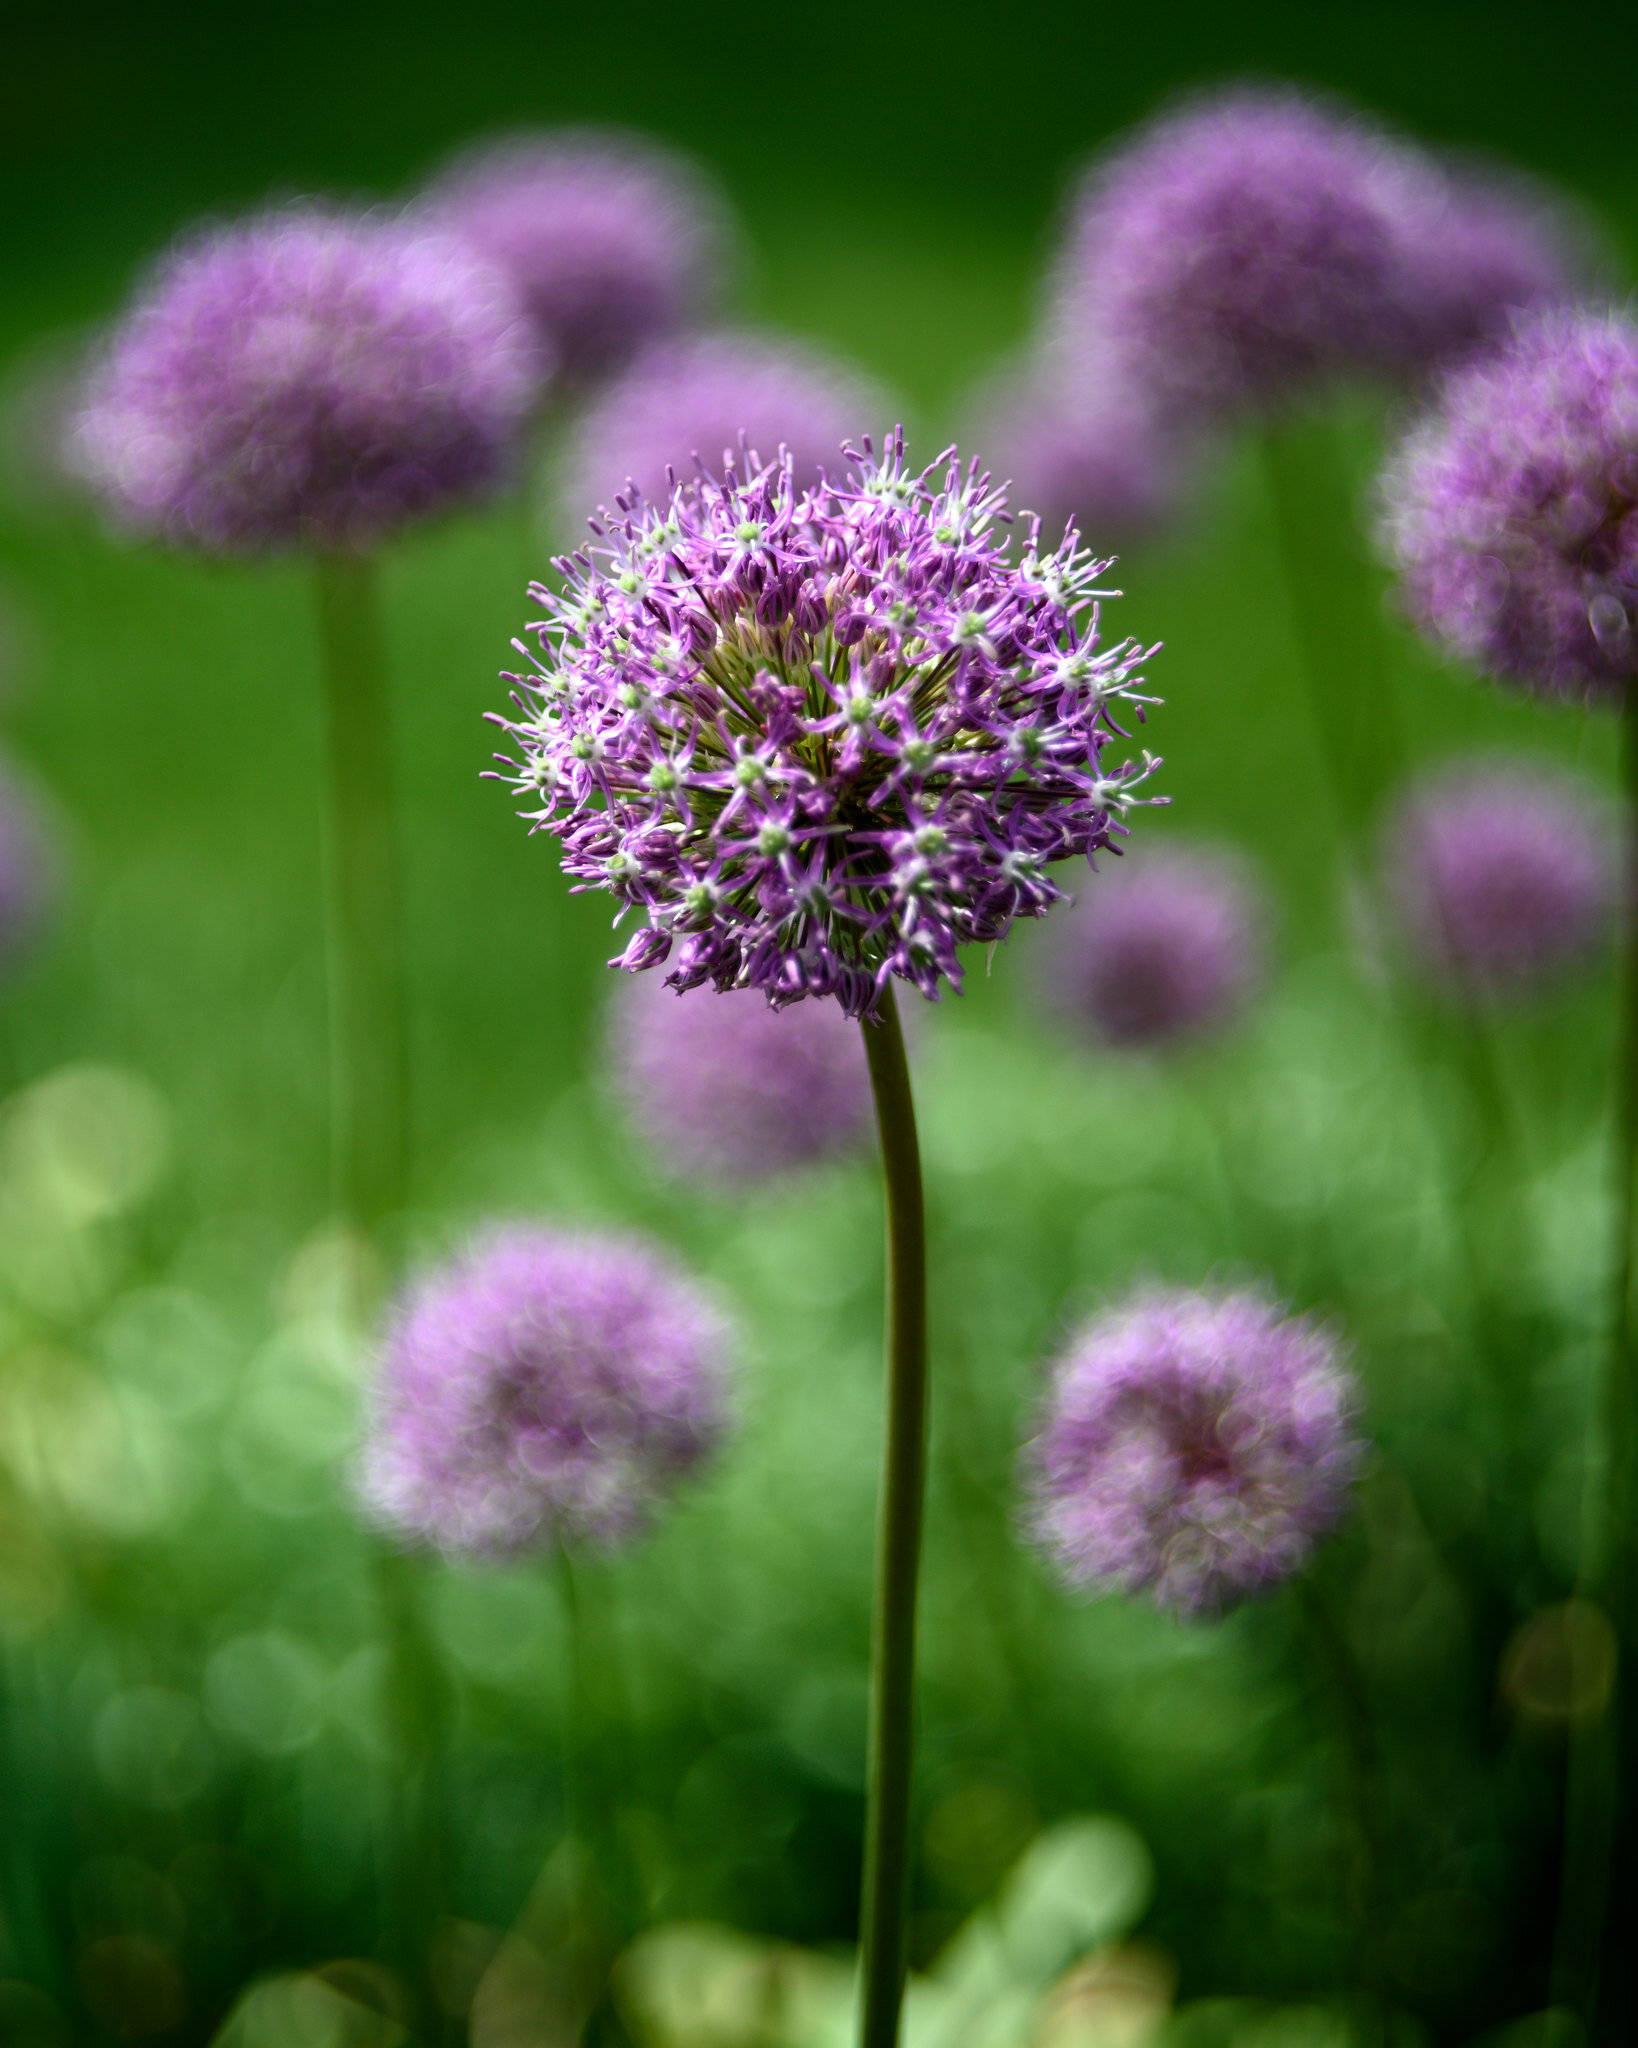 An M44-7 image shot at f/2. The Alliums in the background were relatively close to the one in the foreground so they aren't as swirly. The grass behind them with the dew on it, however, is just swirly Bokeh balls.